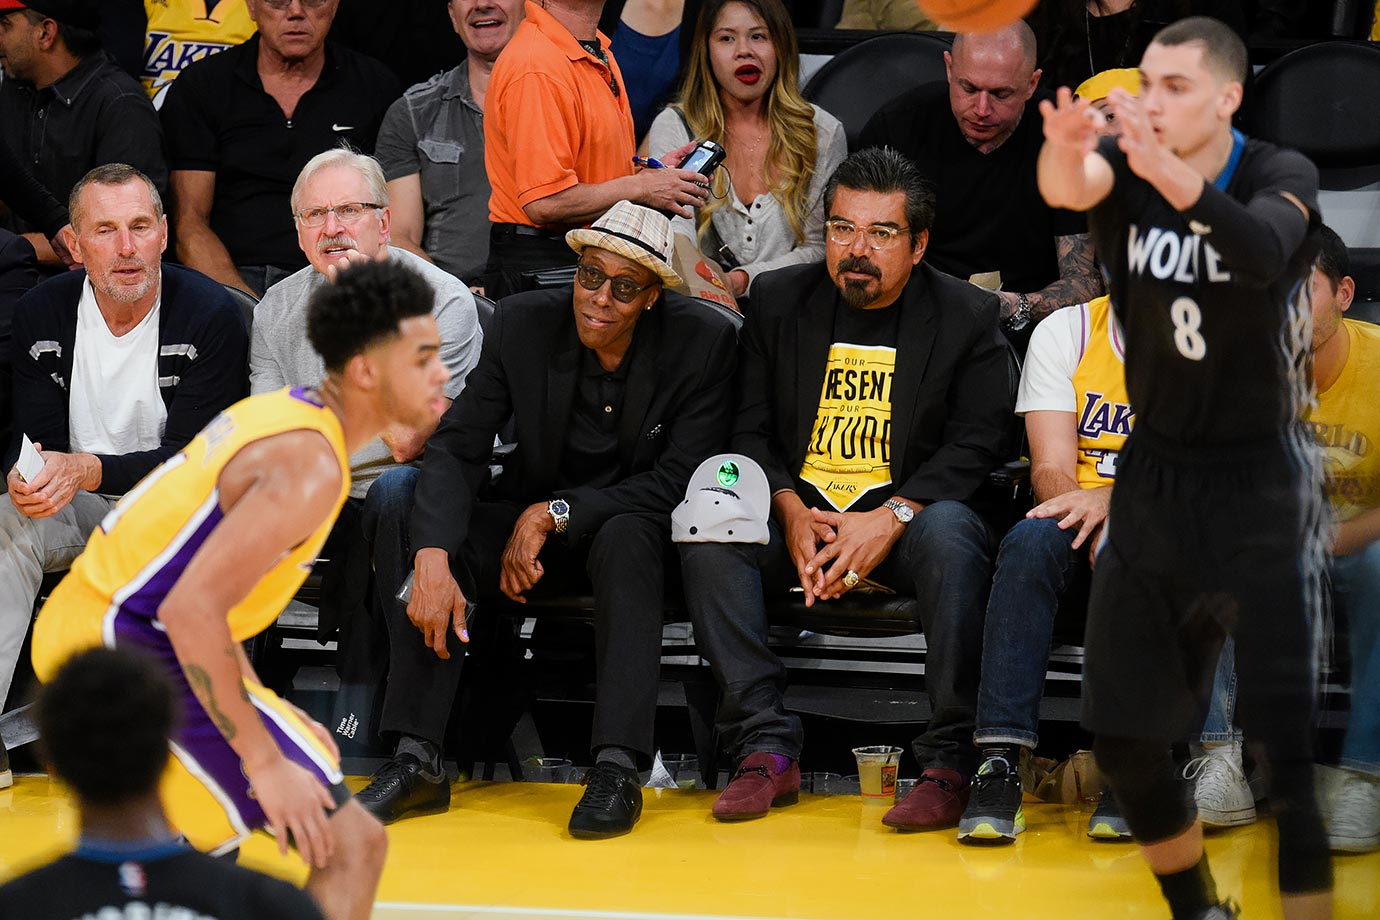 Oct. 28, 2015 — Lakers vs. Kings at Staples Center in Los Angeles